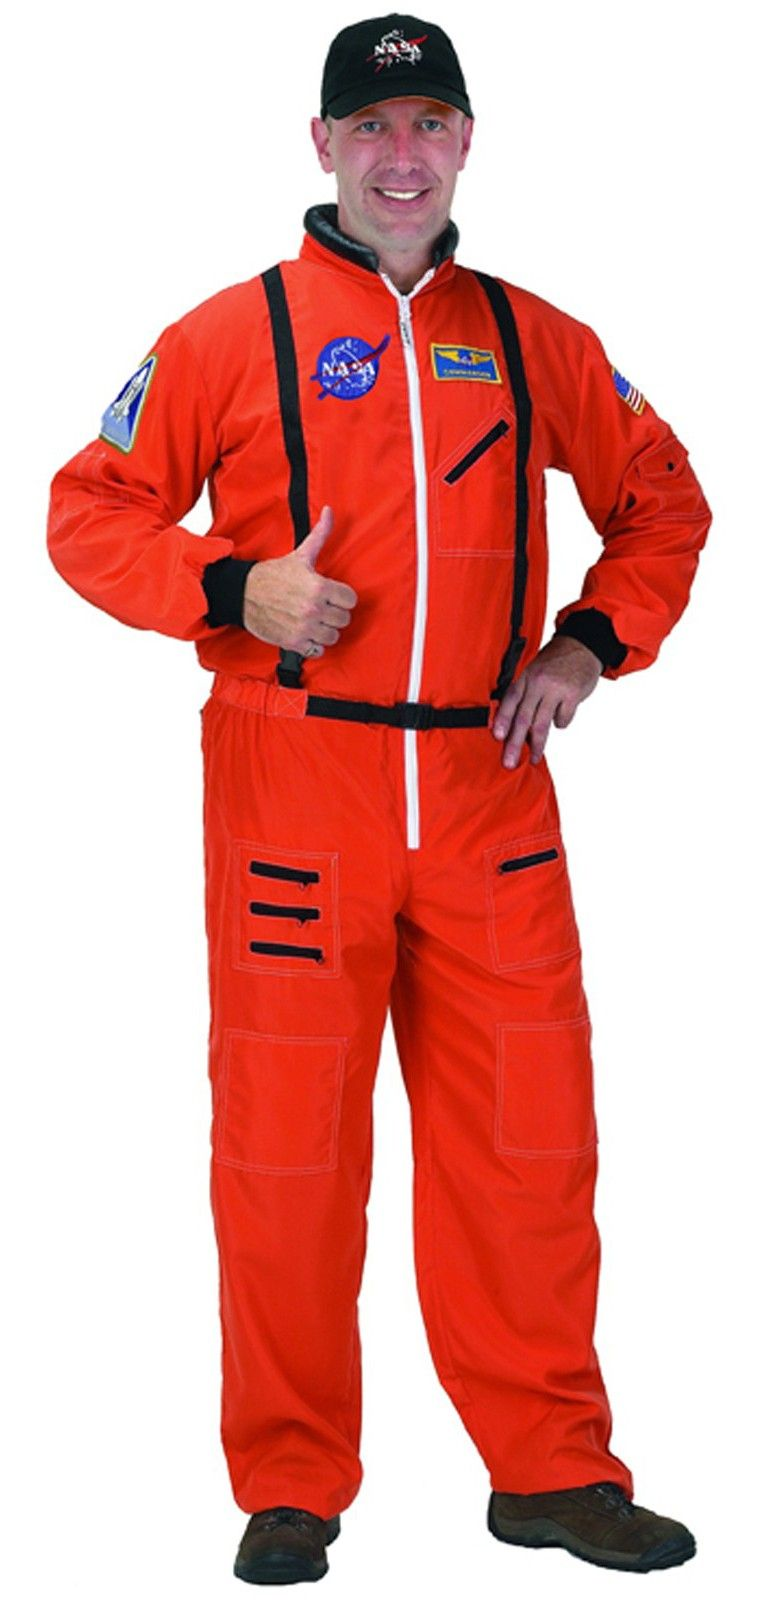 428878c8446f NASA Astronaut Orange Suit Adult Costume One Size